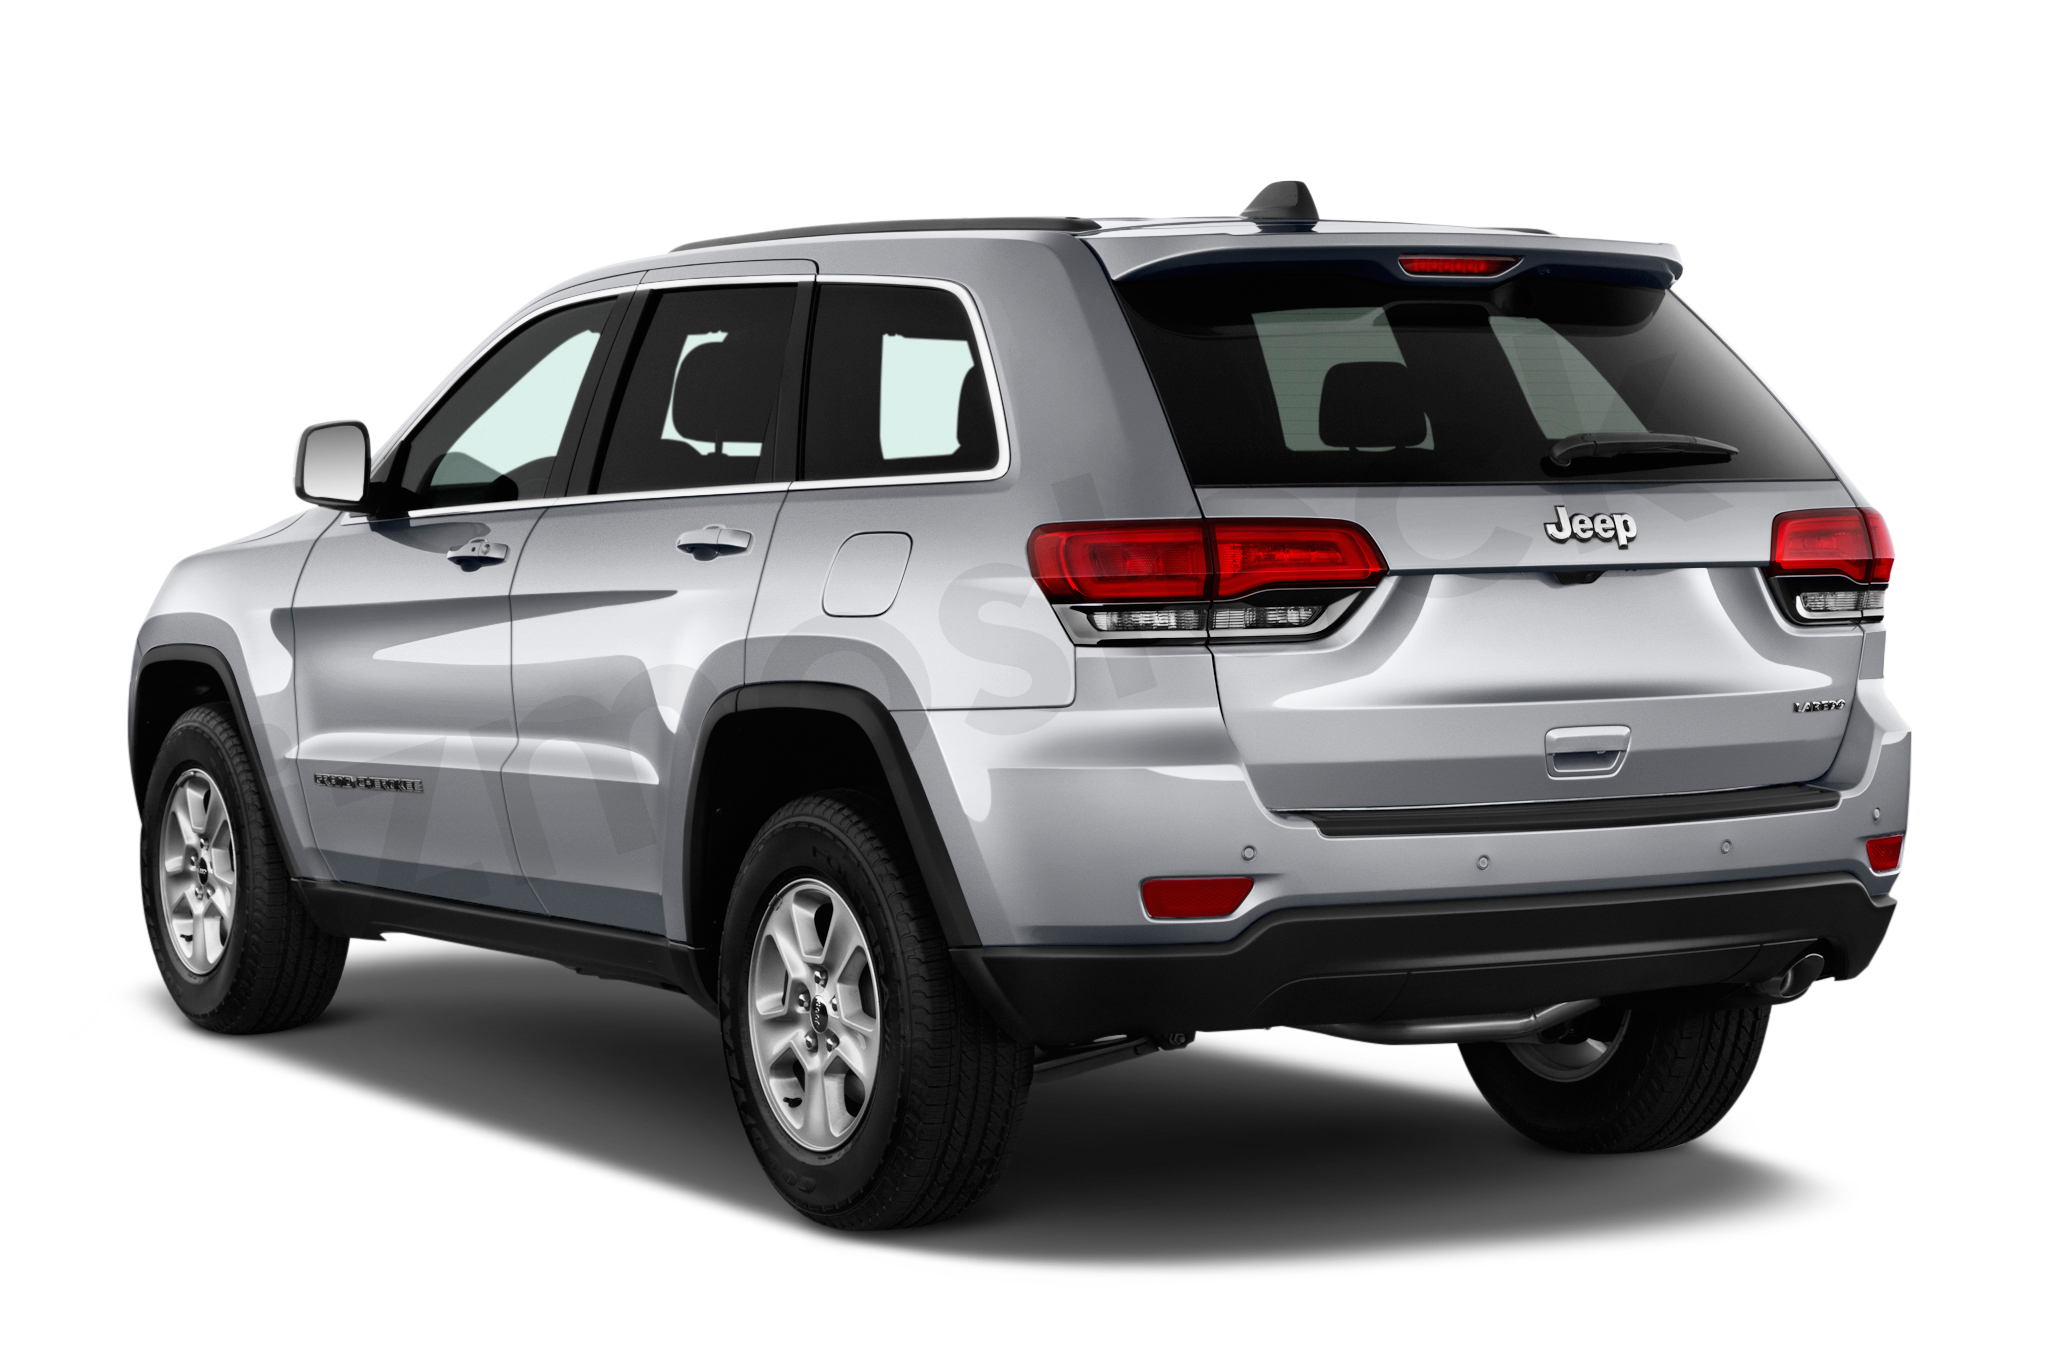 unchallenged 2017 jeep grand cherokee laredo review price specs and pictures. Black Bedroom Furniture Sets. Home Design Ideas